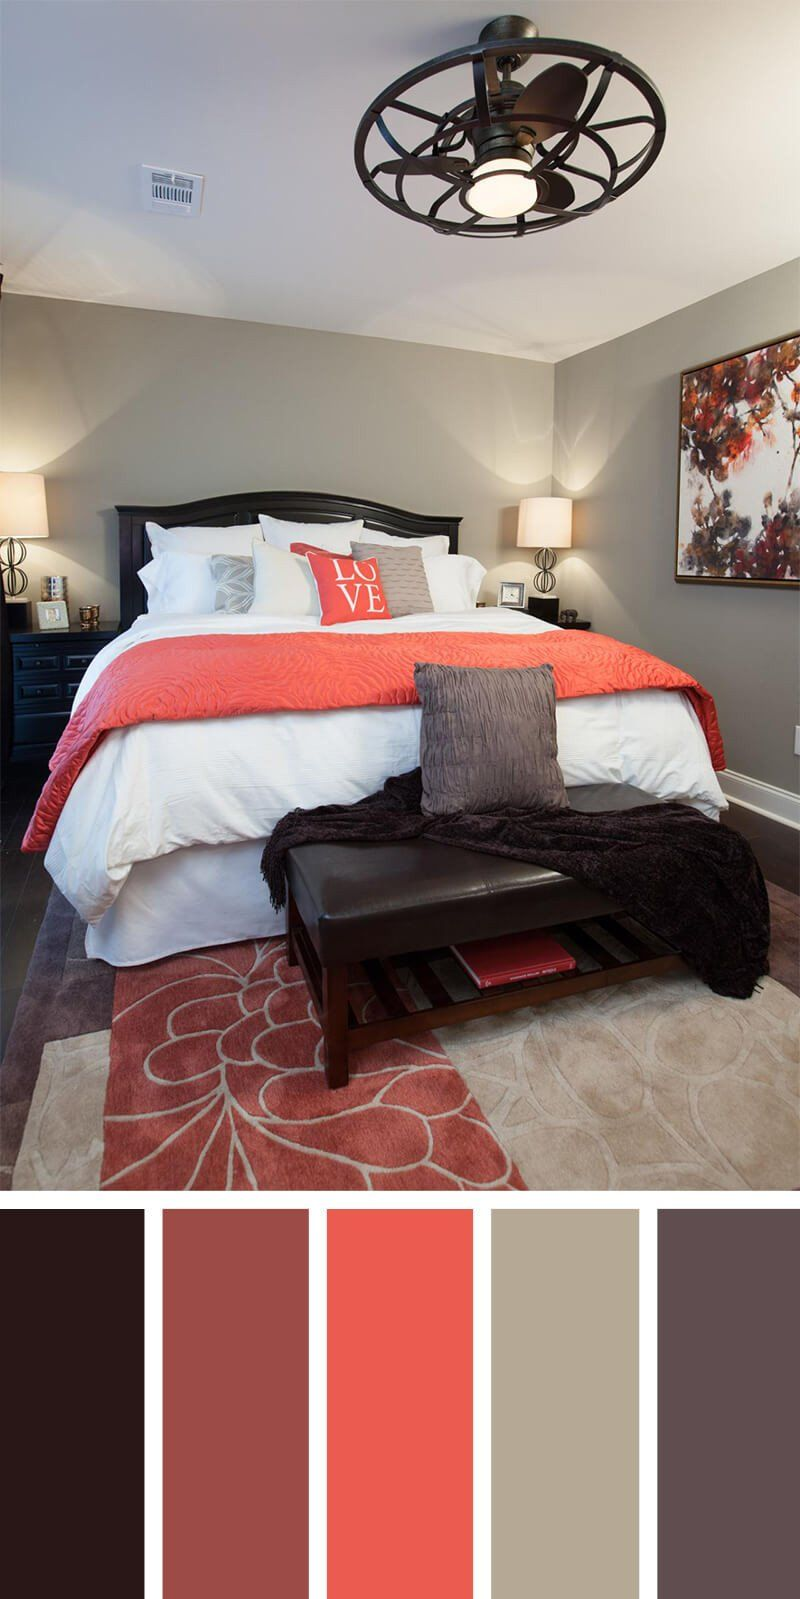 12 Best Bedroom Color Scheme Ideas and Designs for 2021